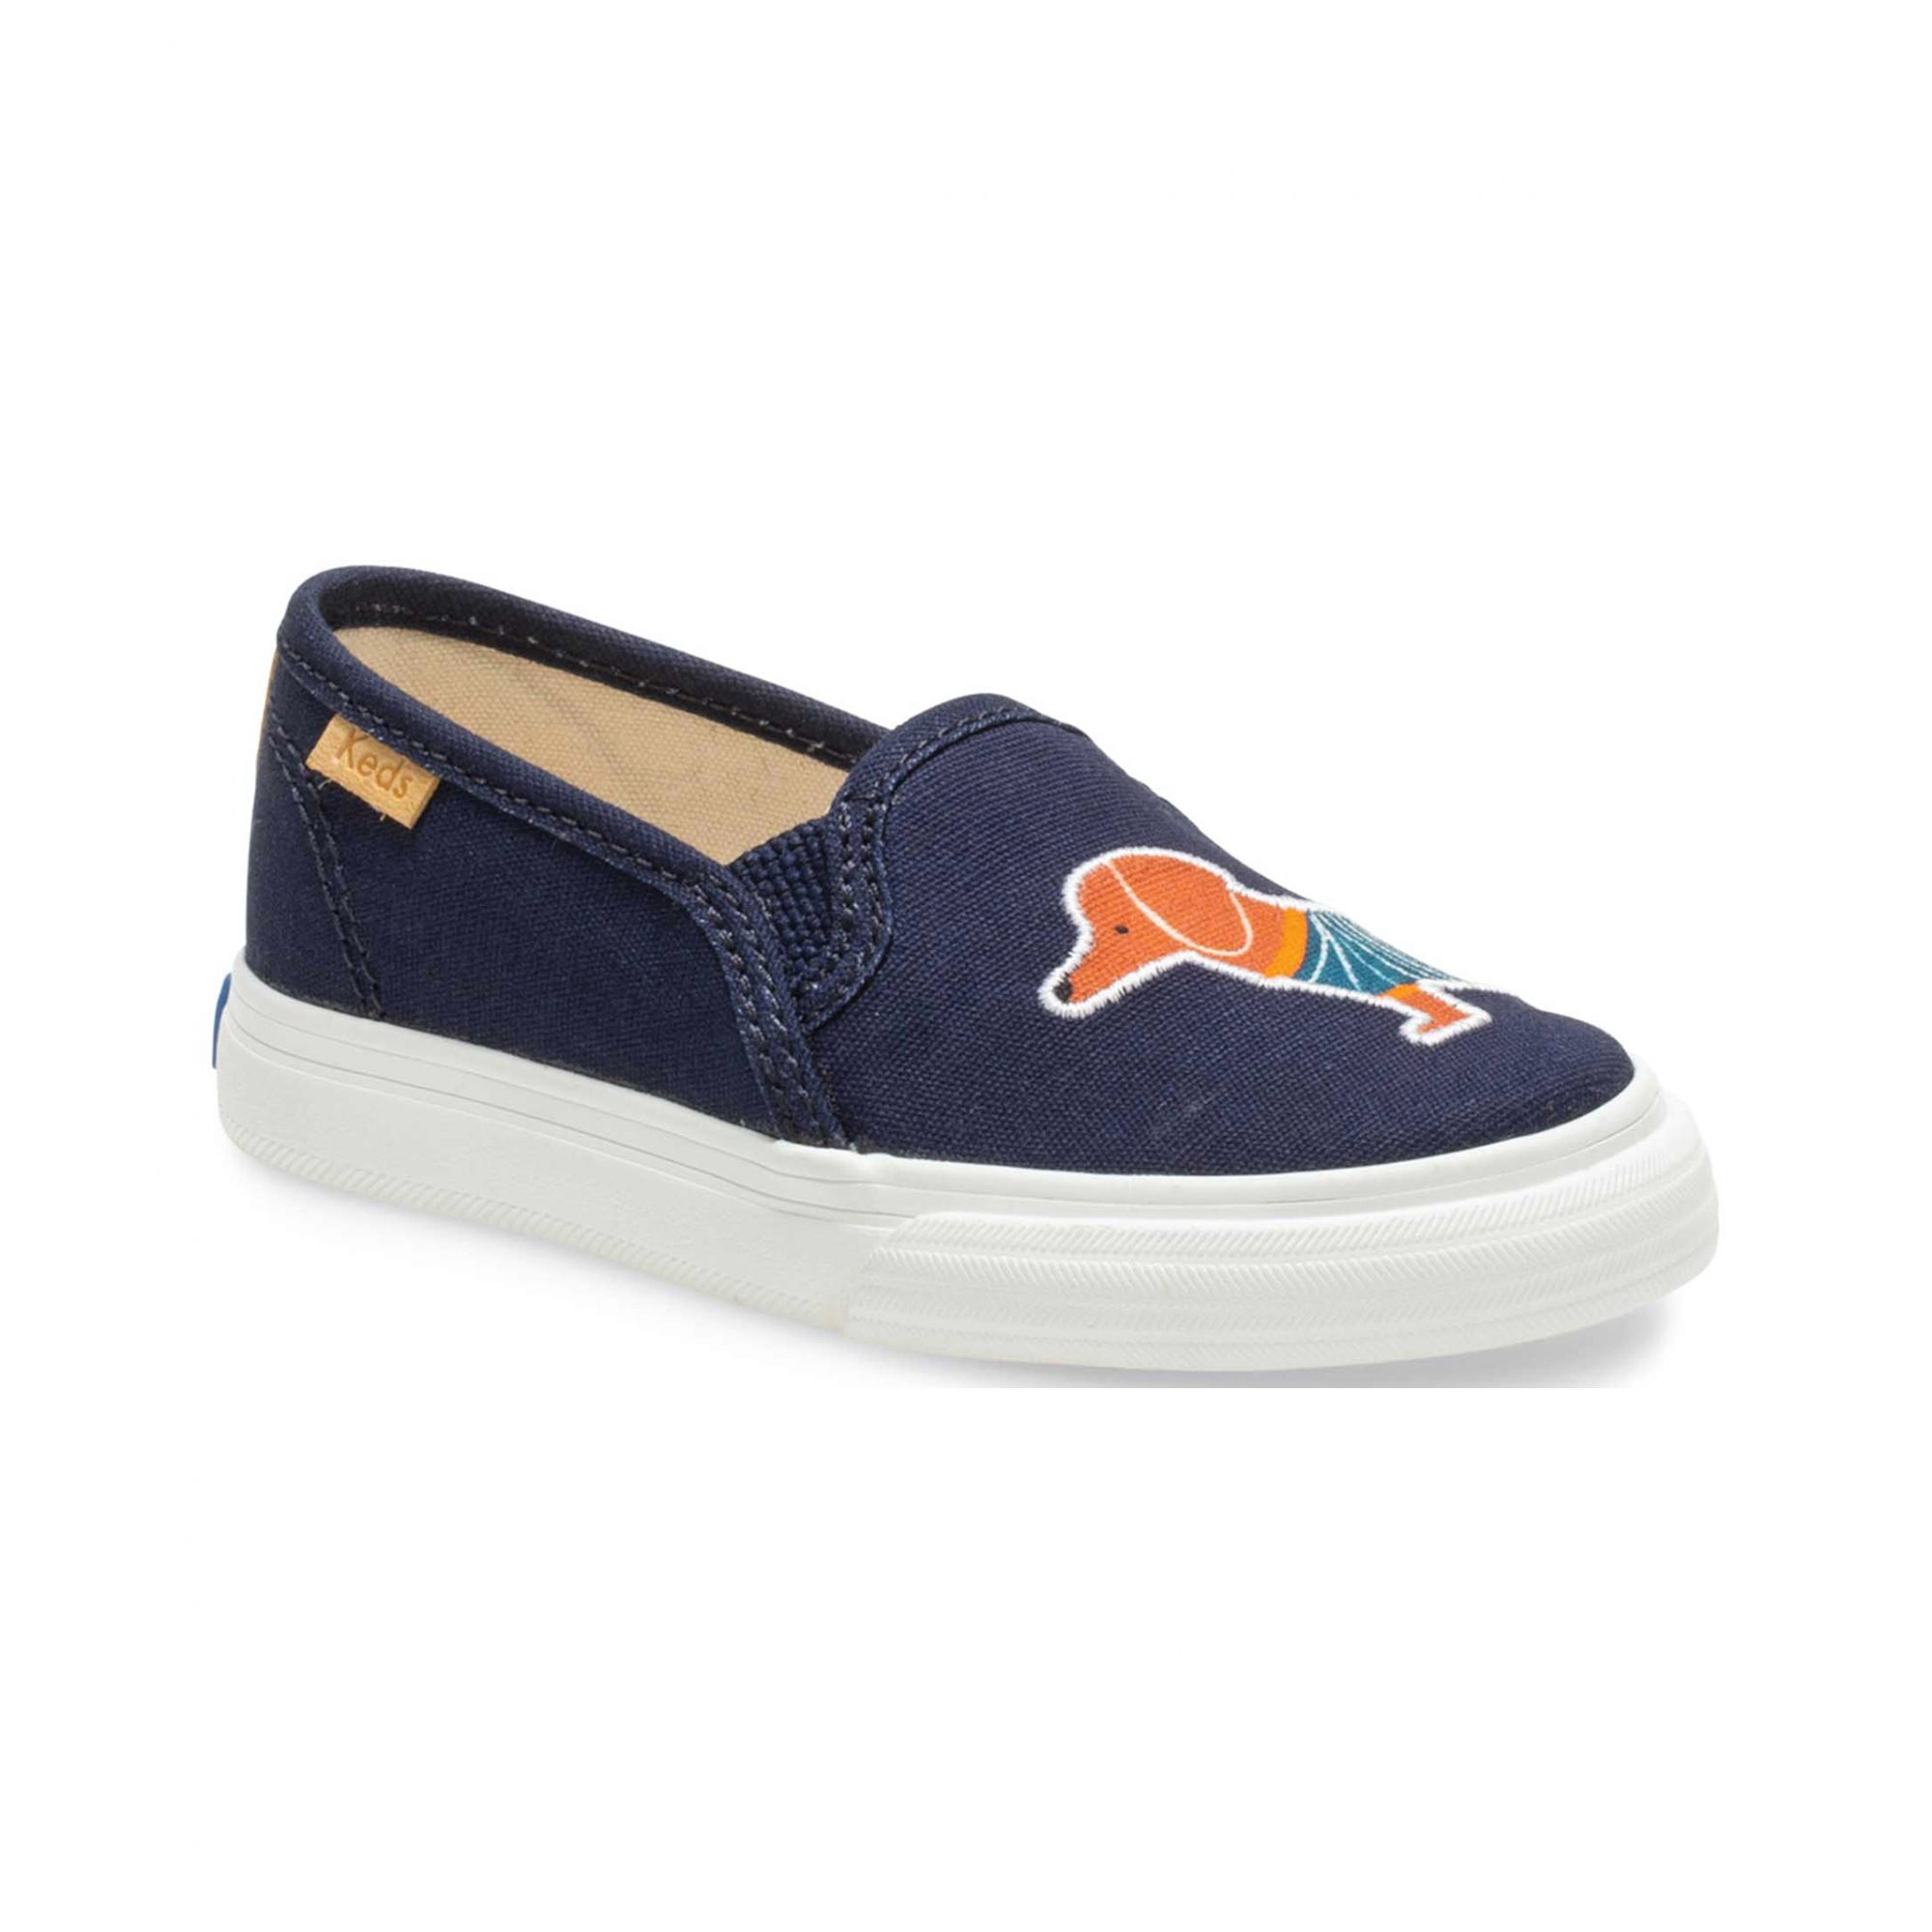 Cool gifts for kids - Rifle Paper Co. Dachshund Little Kid Double Decker Slip-On